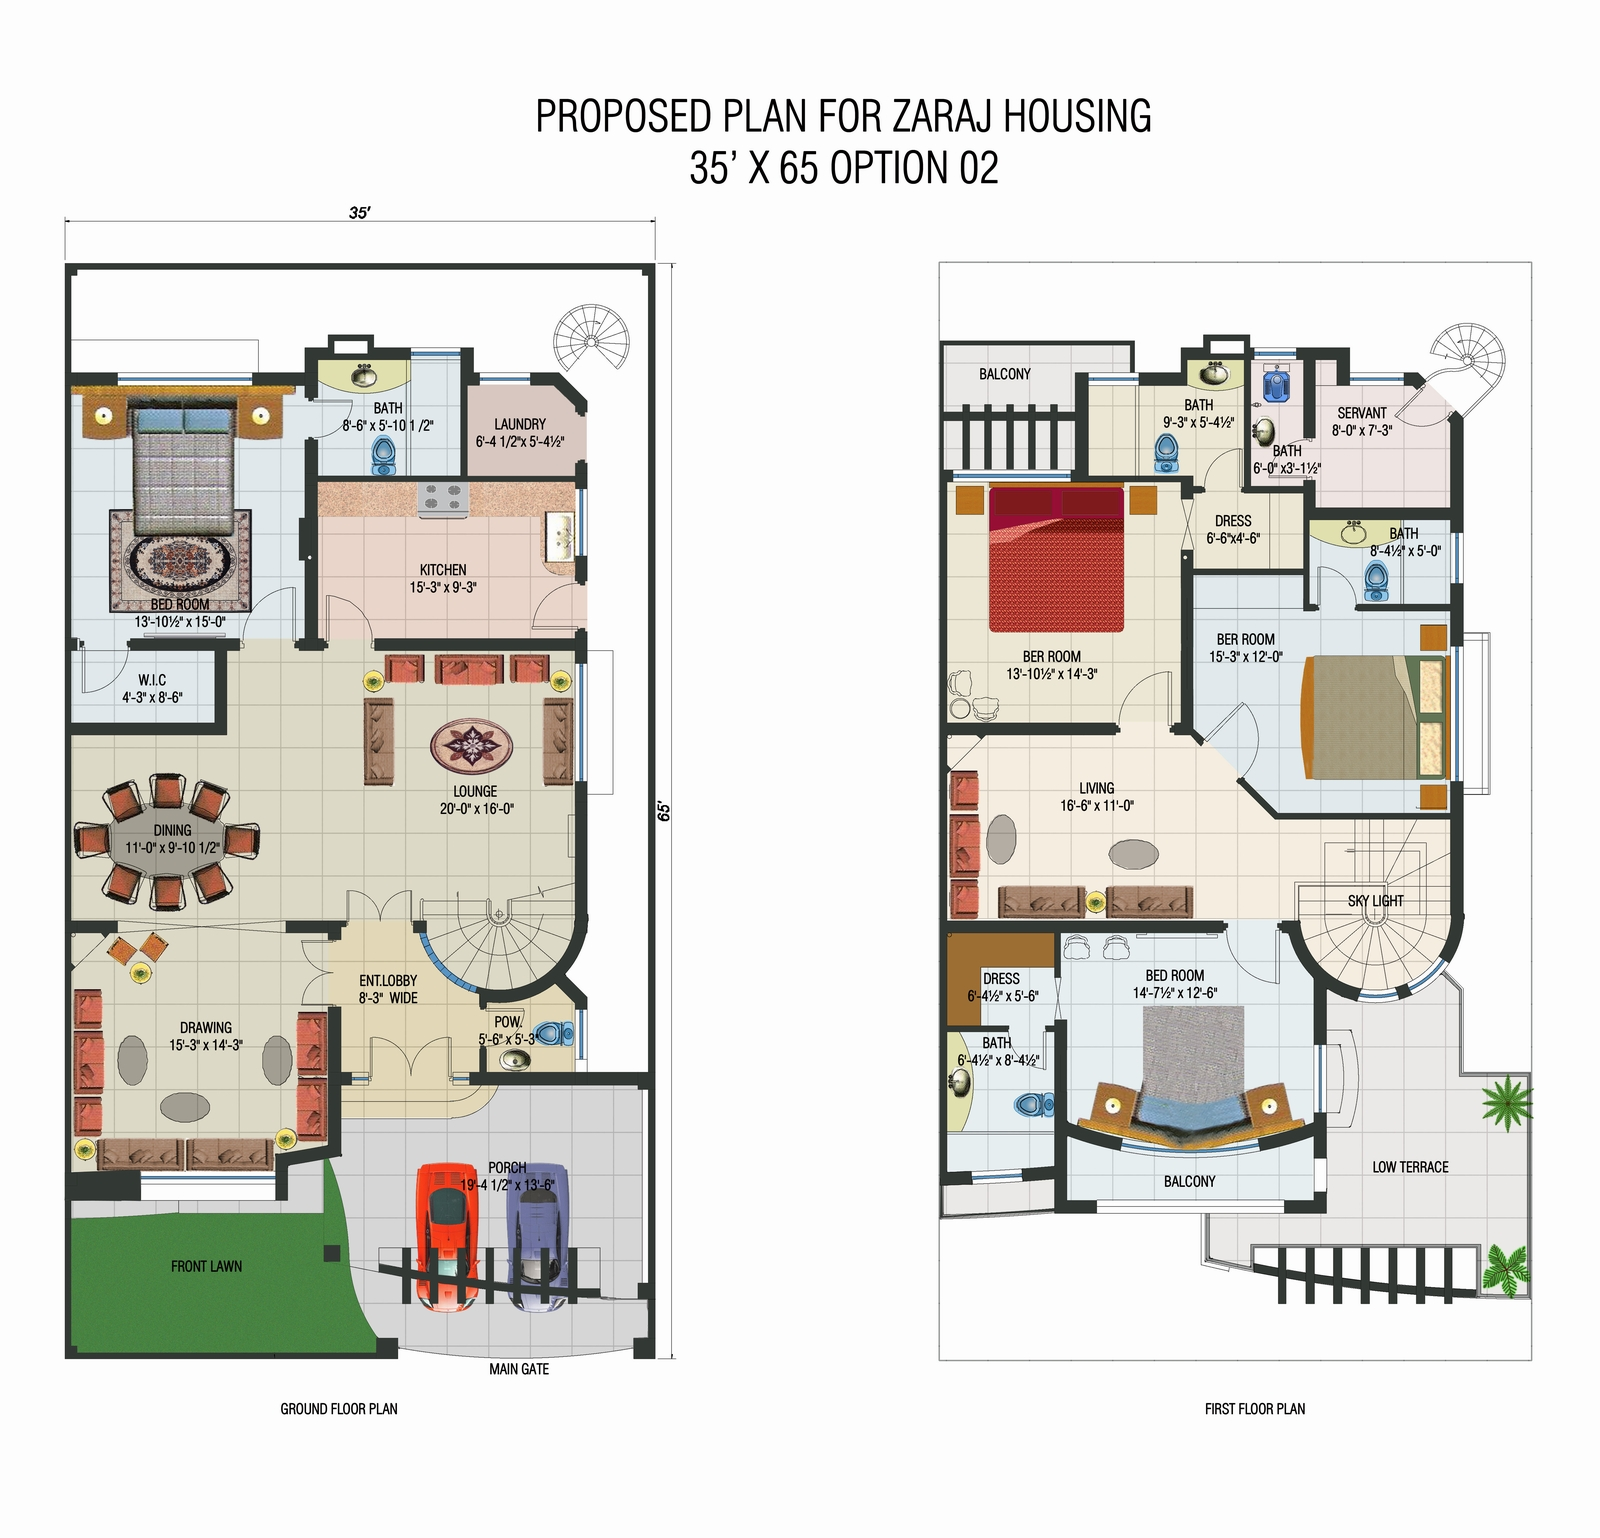 Pakistan 10 marla house plan design living room designs for 10 marla home designs in pakistan